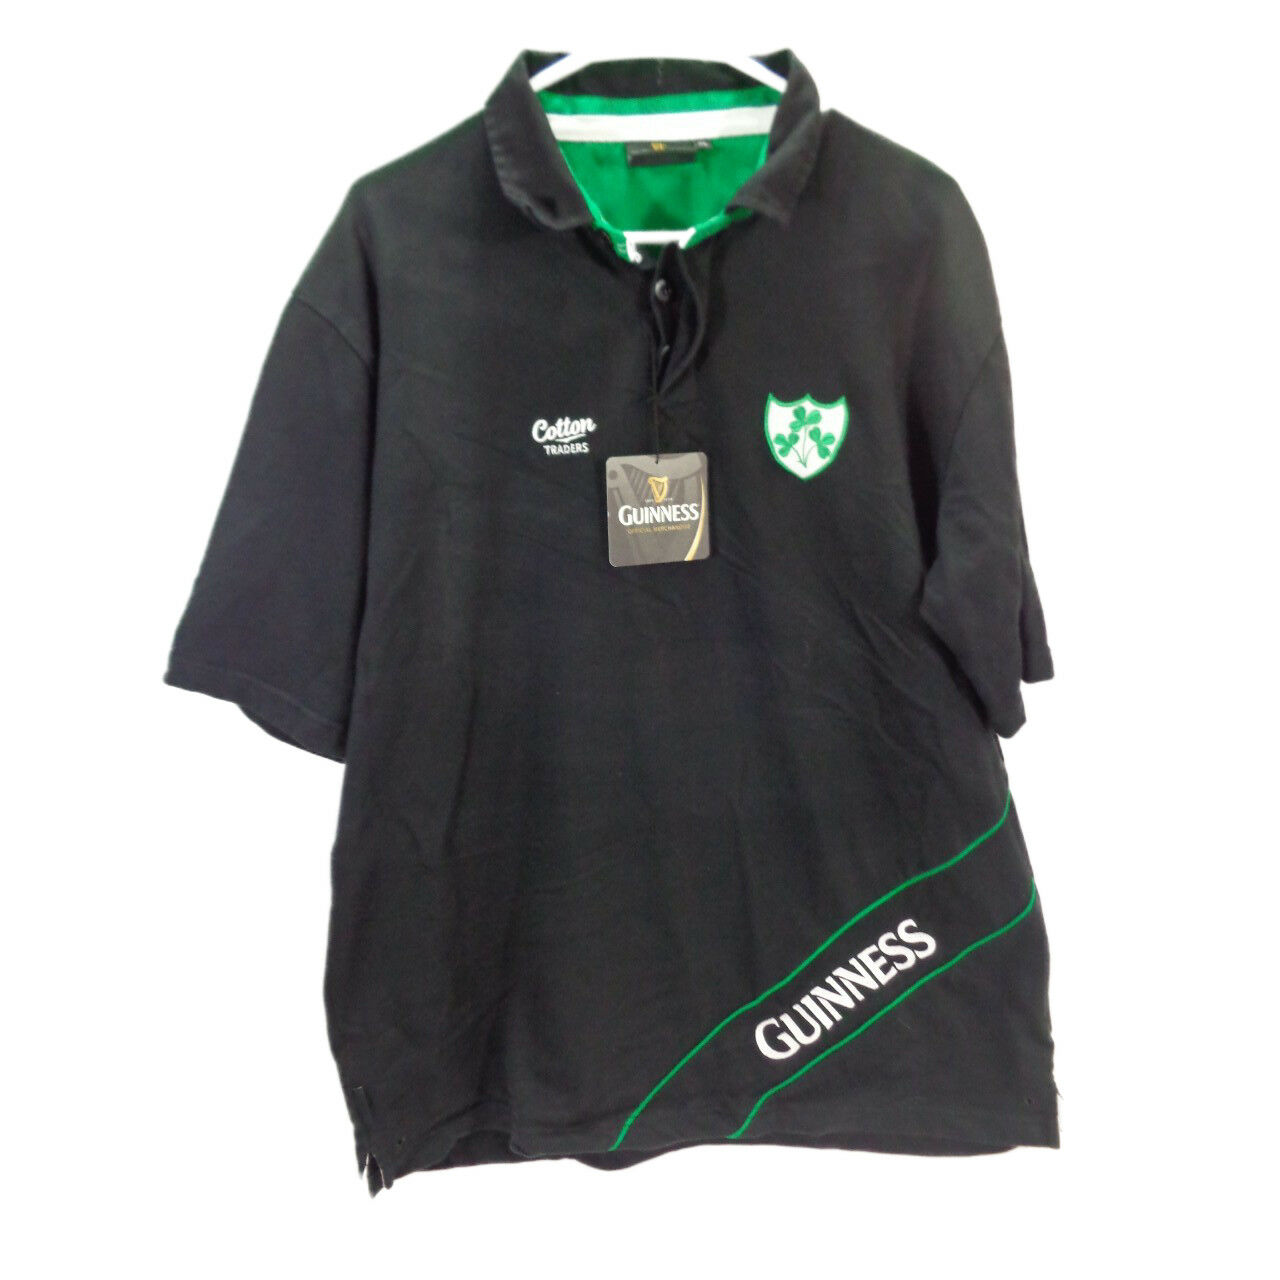 7b4dc6b16c1 Guinness Rugby Shirt Cotton Traders | Top Mode Depot